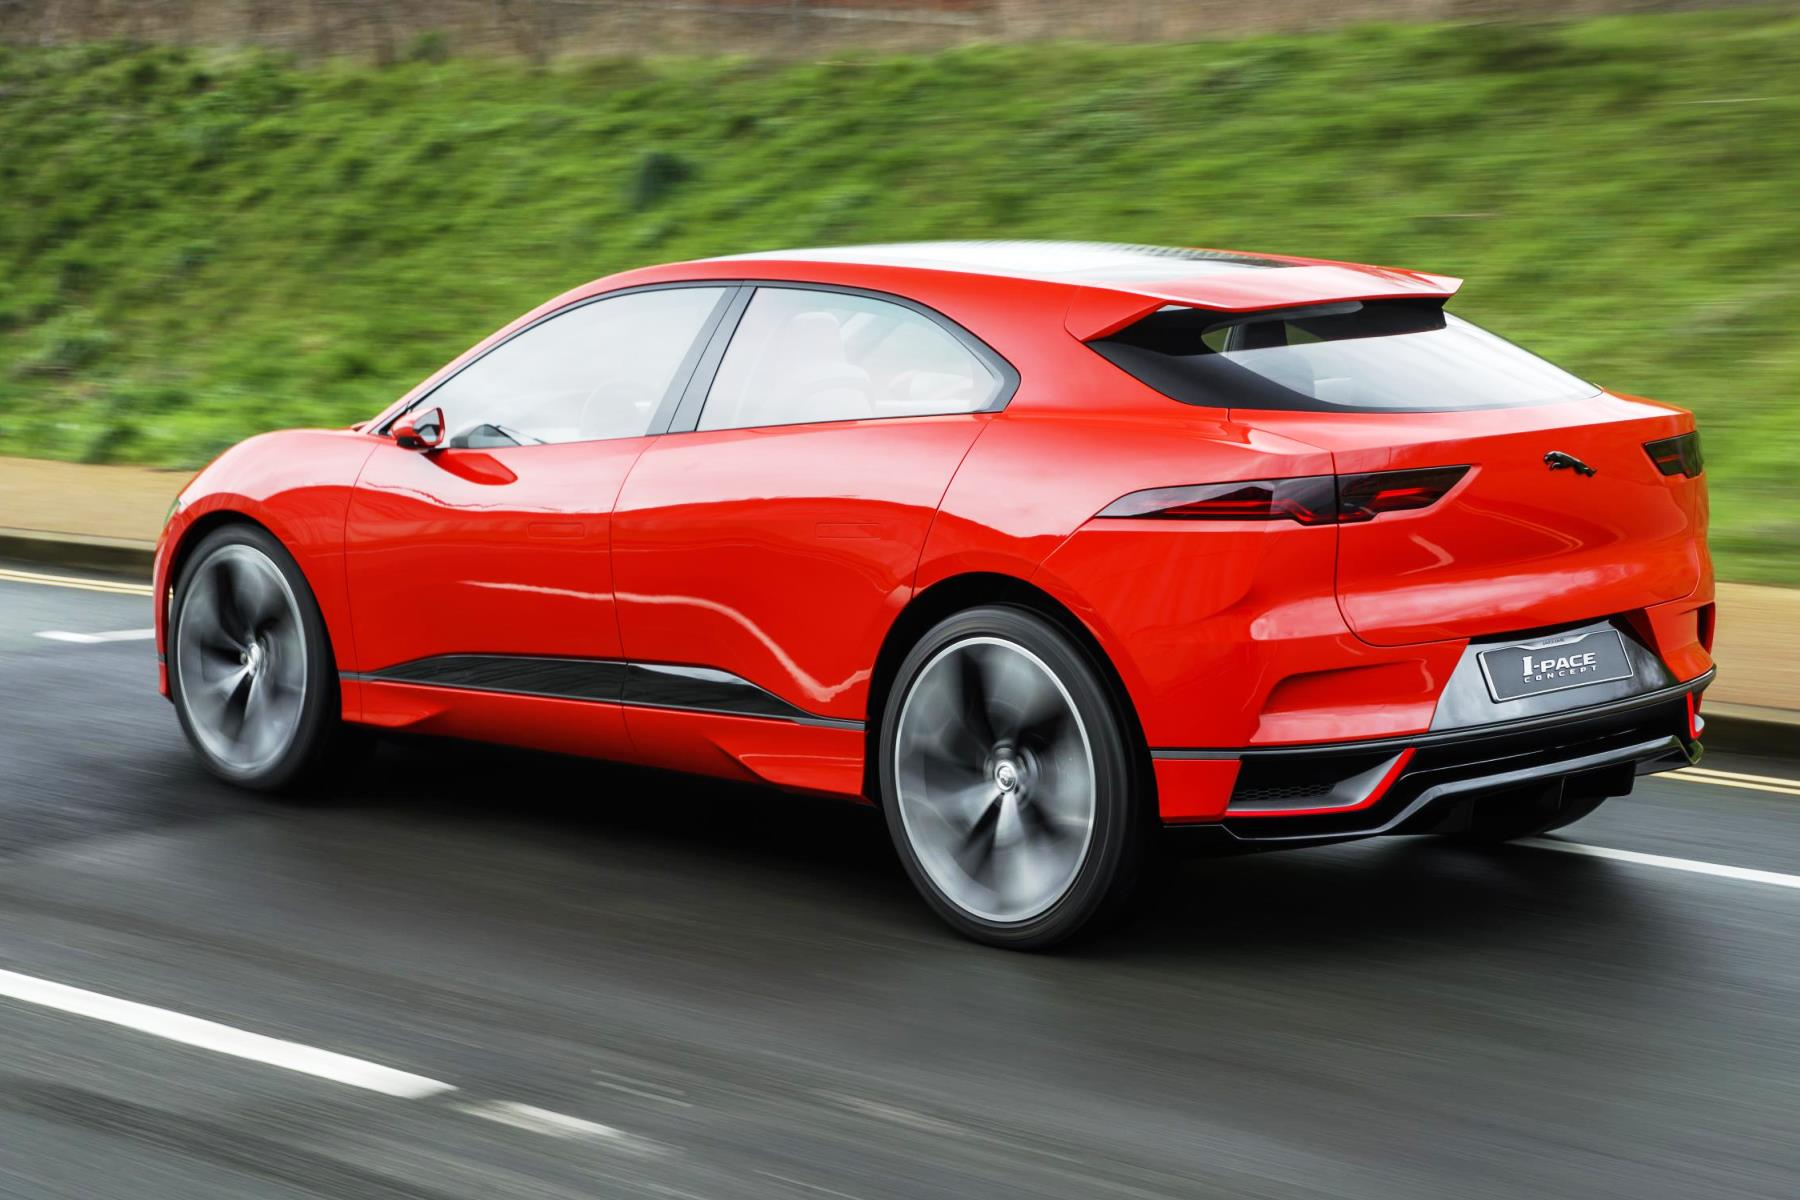 All Jaguar and Land Rover Models To Be Electrified By 2020